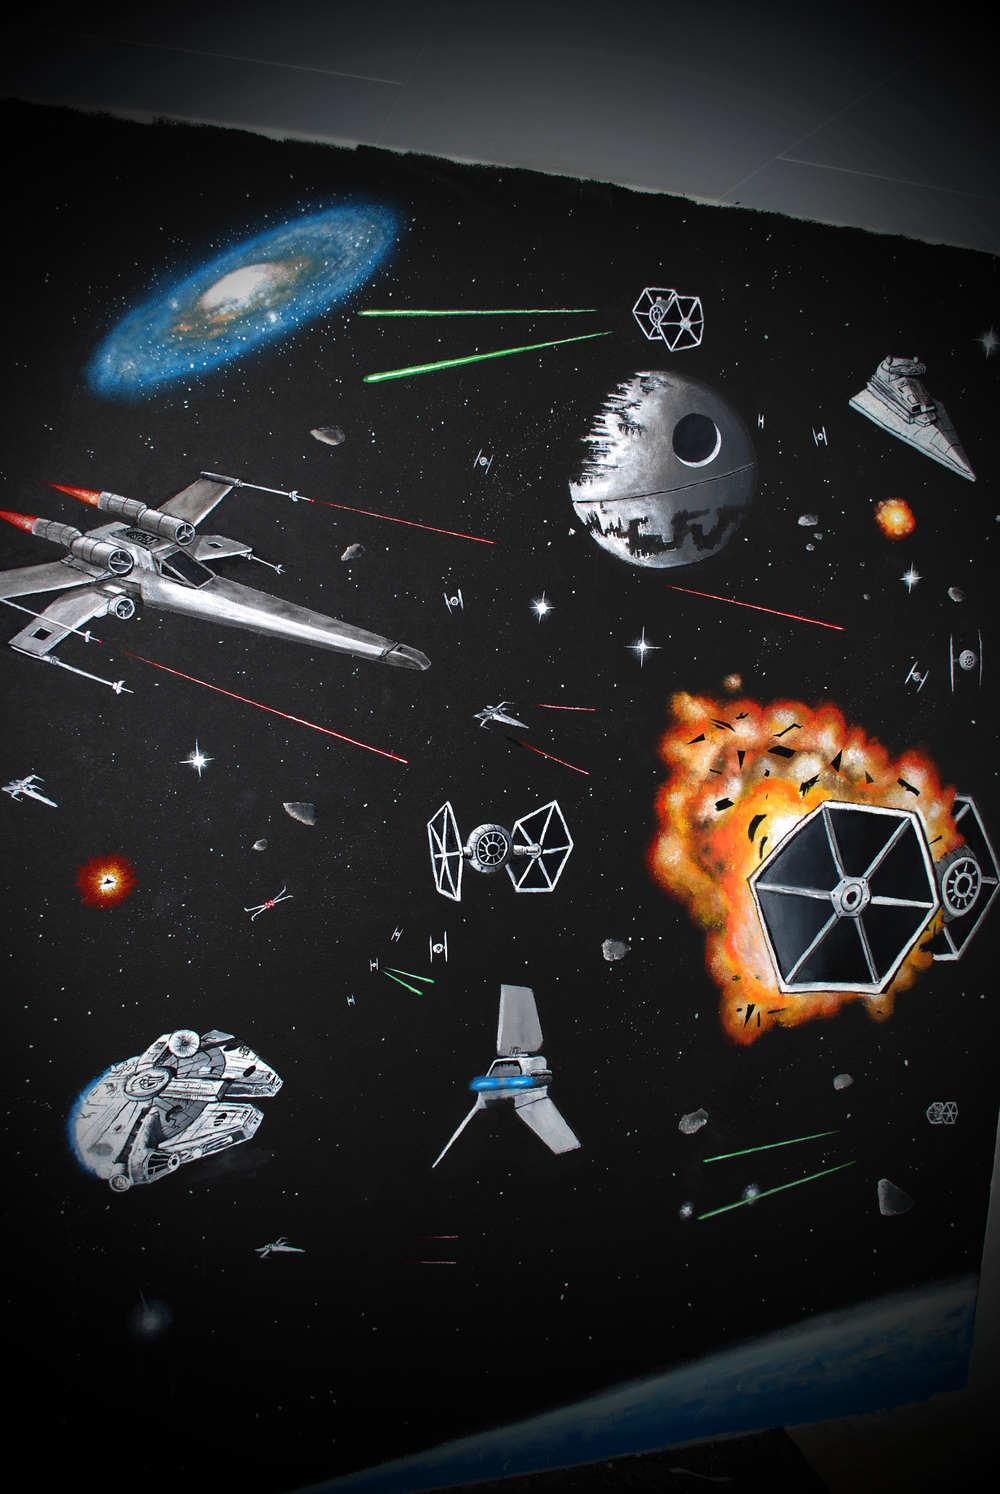 i was commissioned to paint this mural in a bedroom of a star wars fan